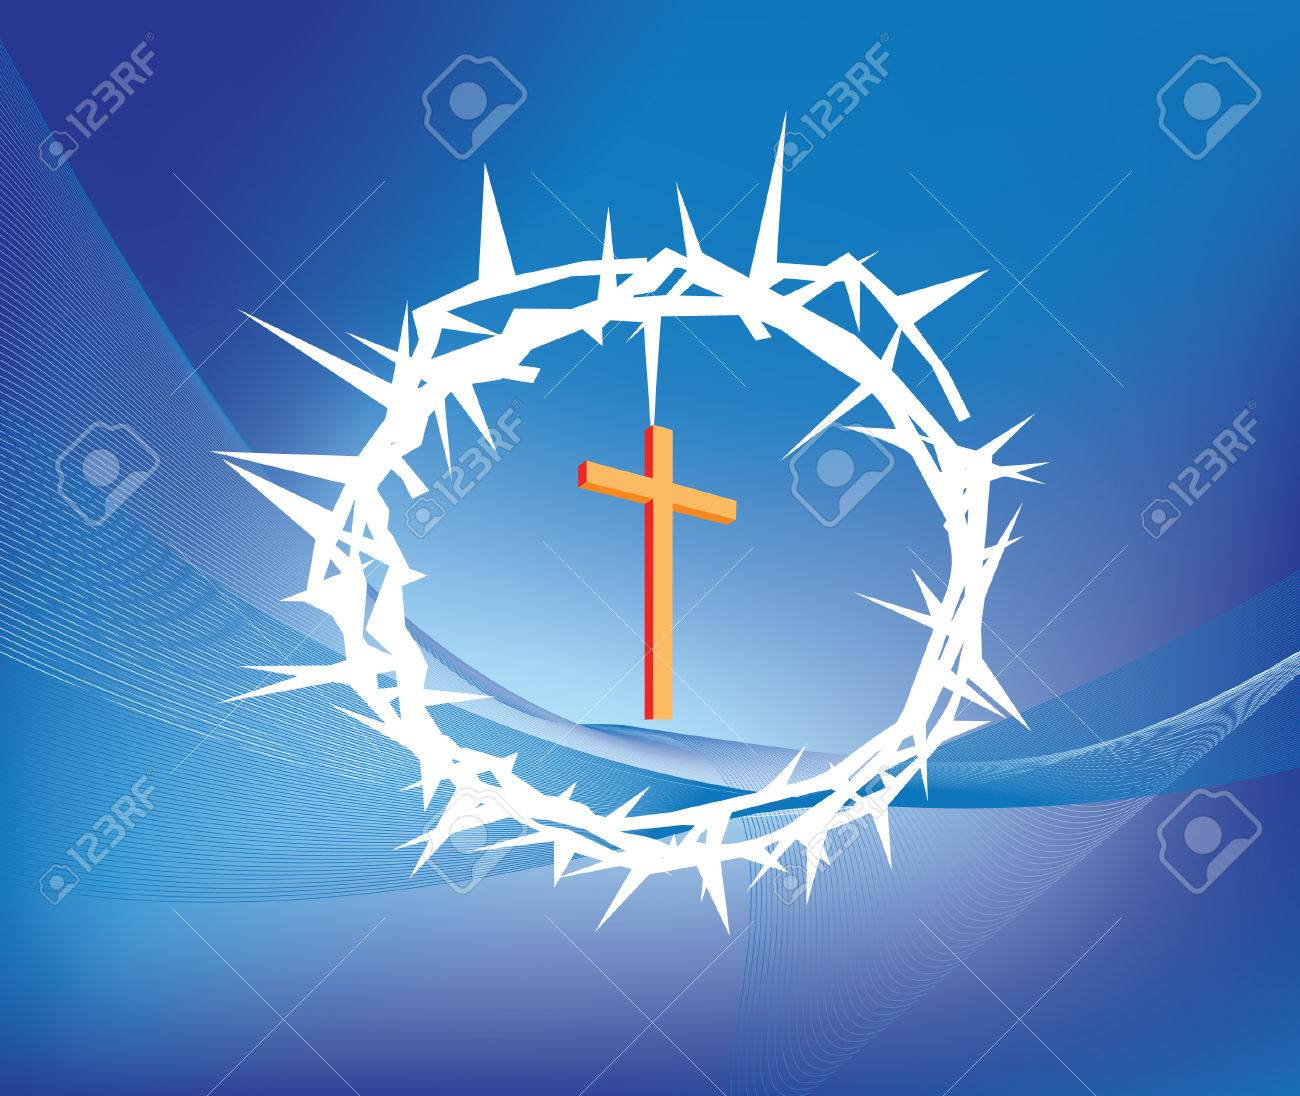 Illustration Of Crown Ofthorns And Christian Cross Royalty Free ...